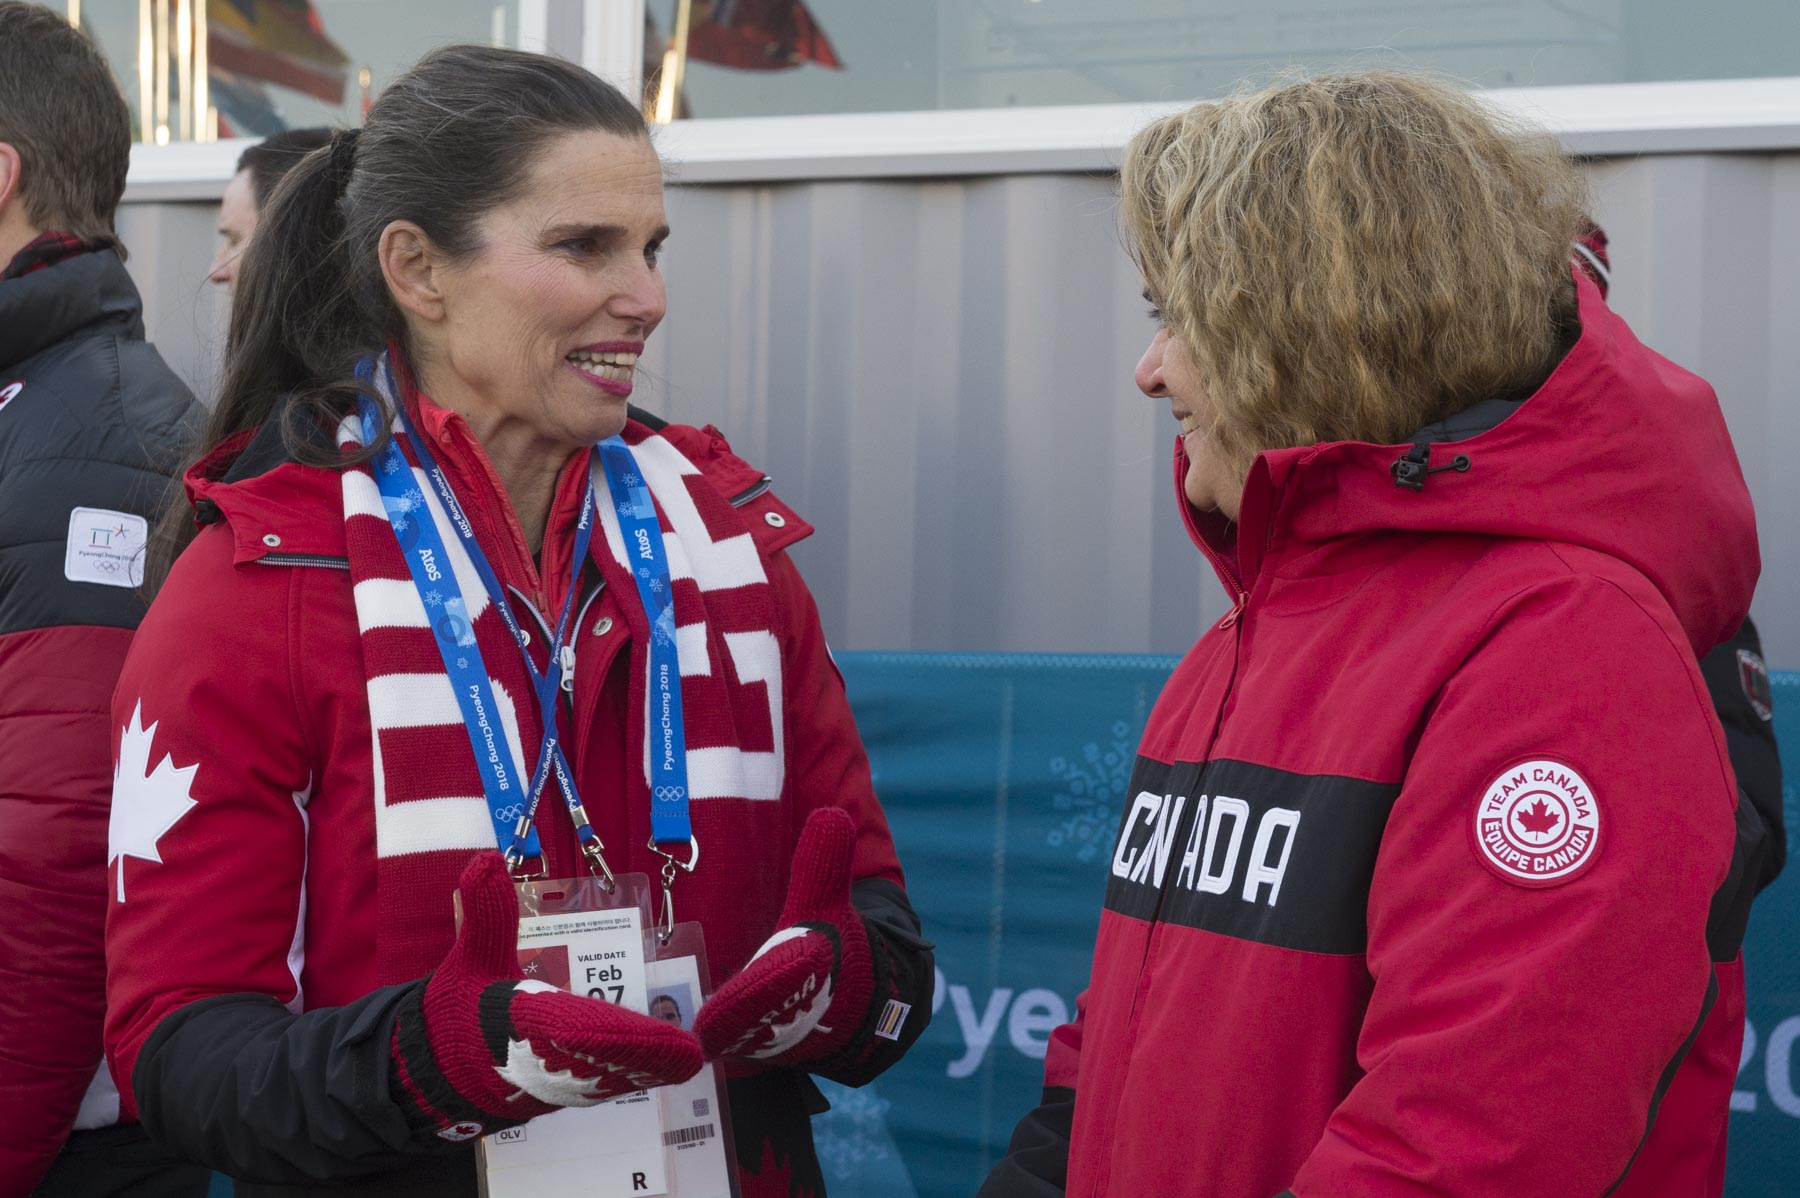 Her Excellency and the Honourable Kirsty Duncan, Minister of Science and Minister of Sport and Persons with Disabilities, were on hand to welcome Team Canada athletes.